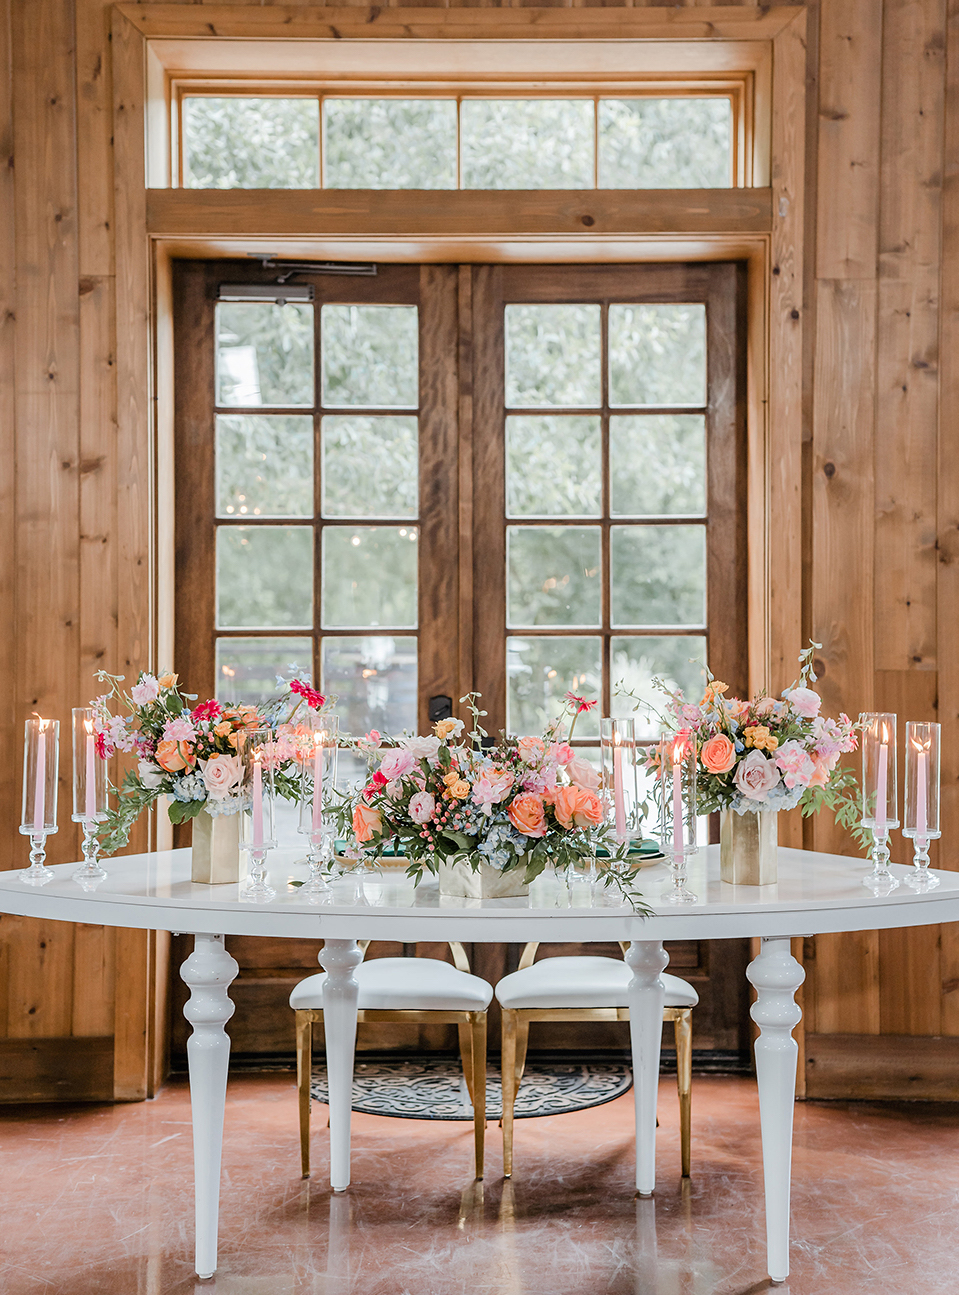 White table adorned with pink, orange, and light blue florals that include hydrangeas, roses, and peonies. Pink lit tapered candles sit atop of the table with a wooden window door behind inside of The Carriage House wedding venue in Conroe, Texas.